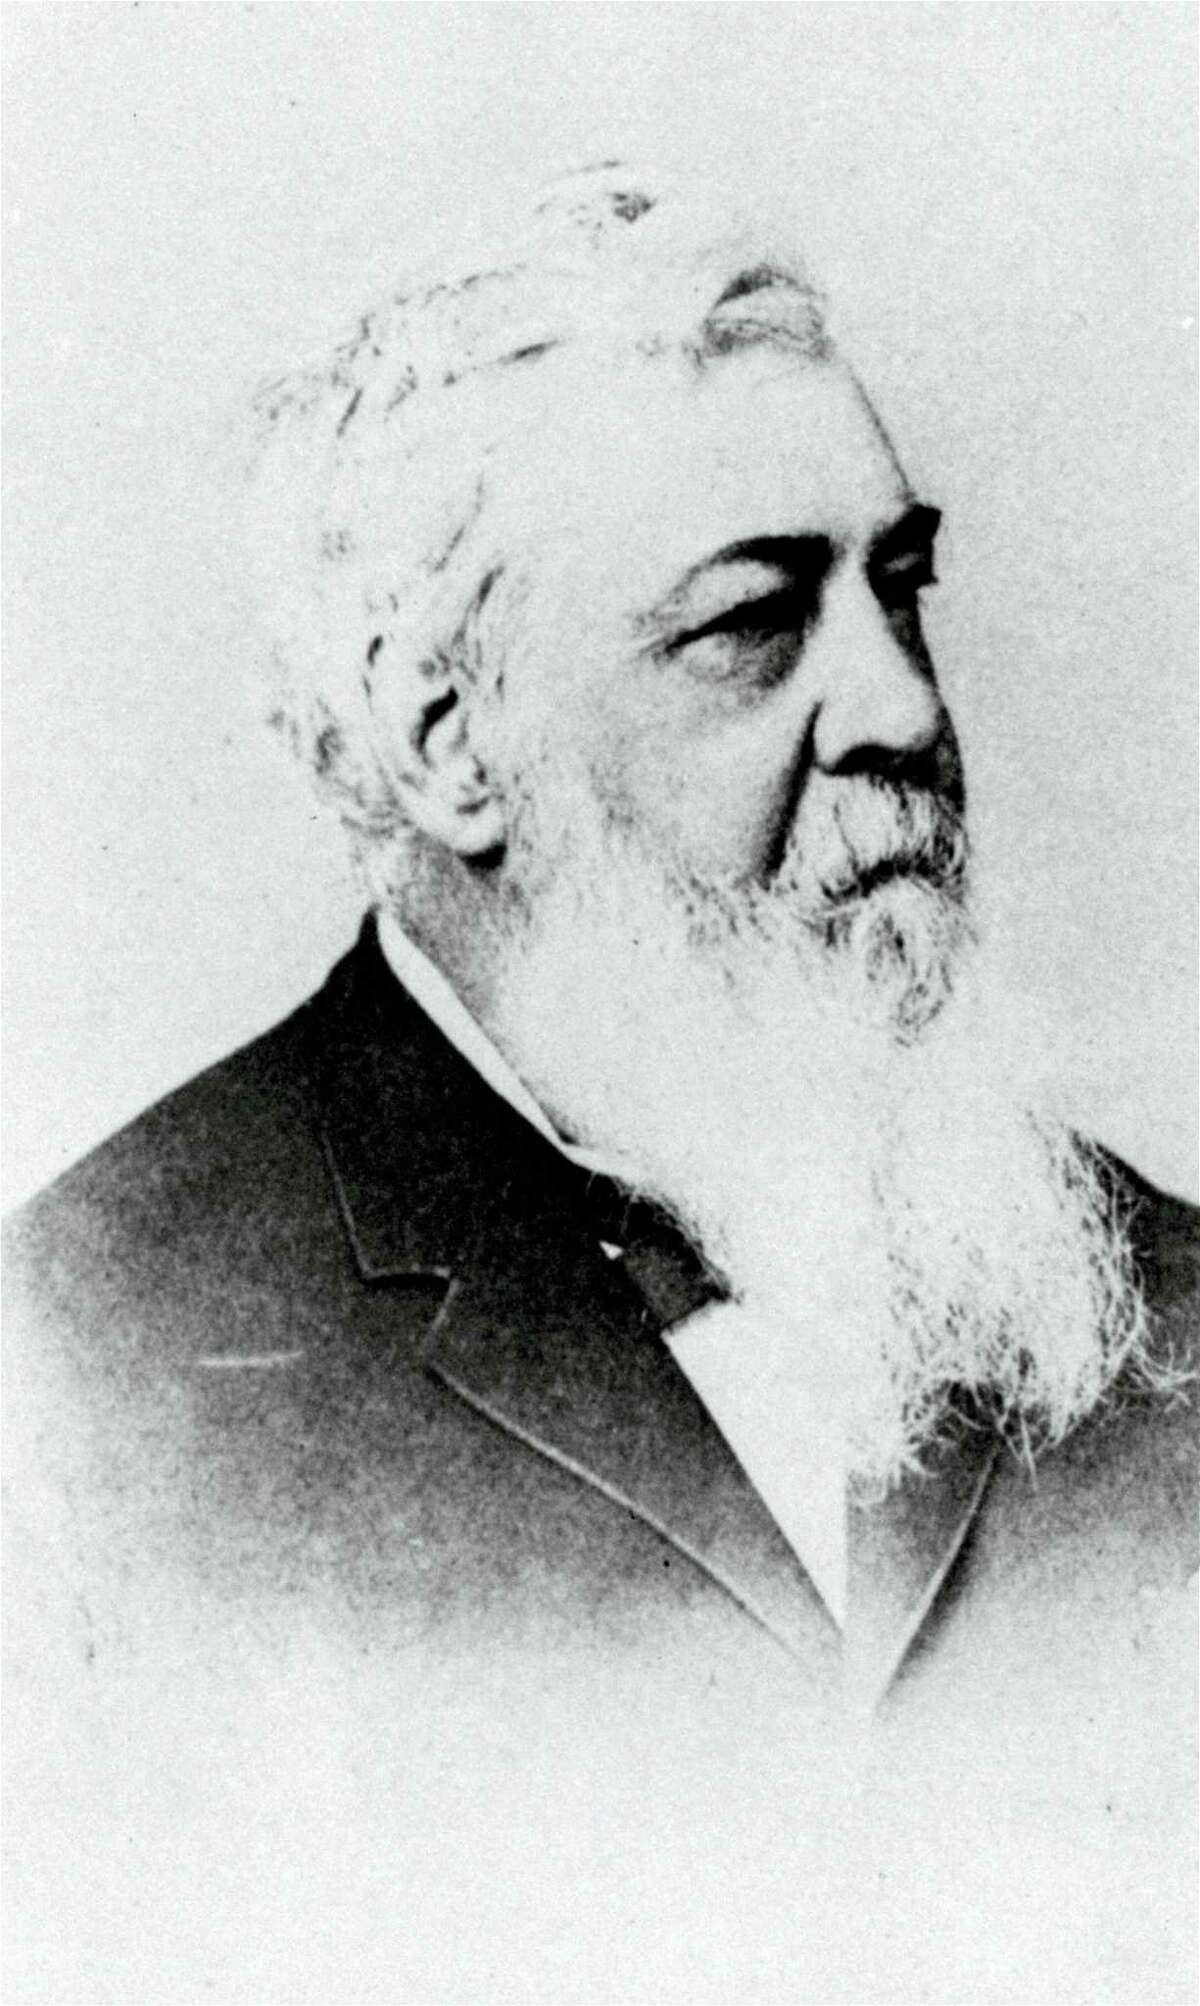 FILE - This is an 1860 file photo showing Alexander J. Cartwright. Modern baseball may have found its birth certificate. And with it a new birth date, and new founding father. Coinciding with the start of the major league season, a set of game-changing documents went up for sale this week. Their authenticity and significance are verified by experts including John Thorn, Major League Baseball's official historian. The documents were authored by Daniel Lucius